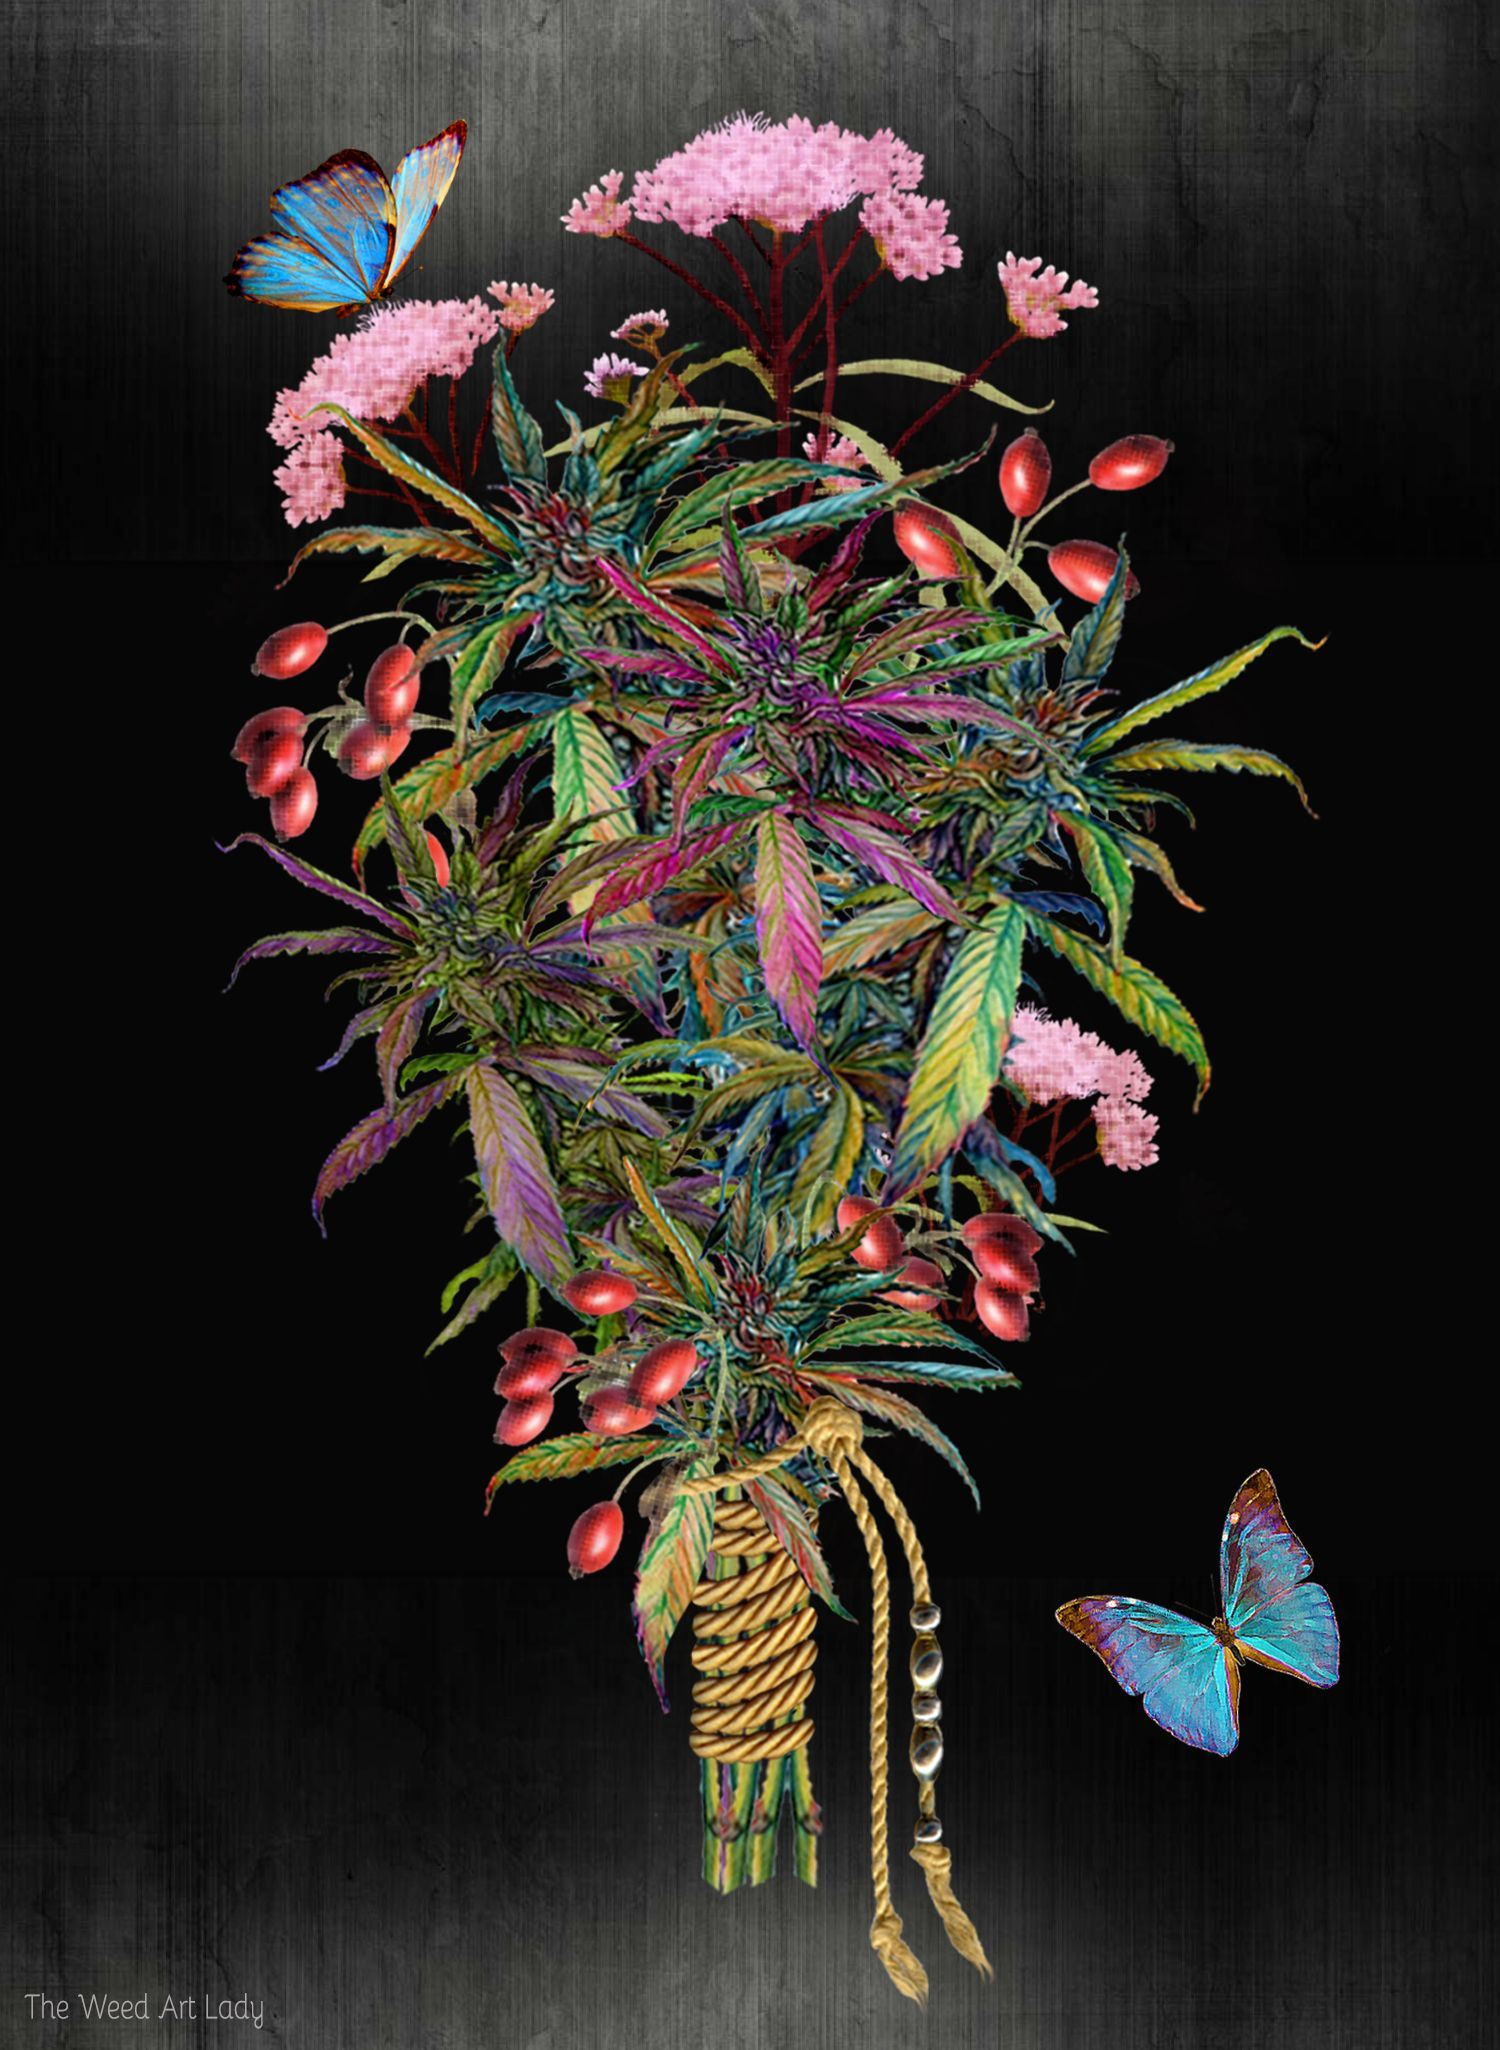 A Nice Bouquet of Flowers | Cannabis Recipe Ideas